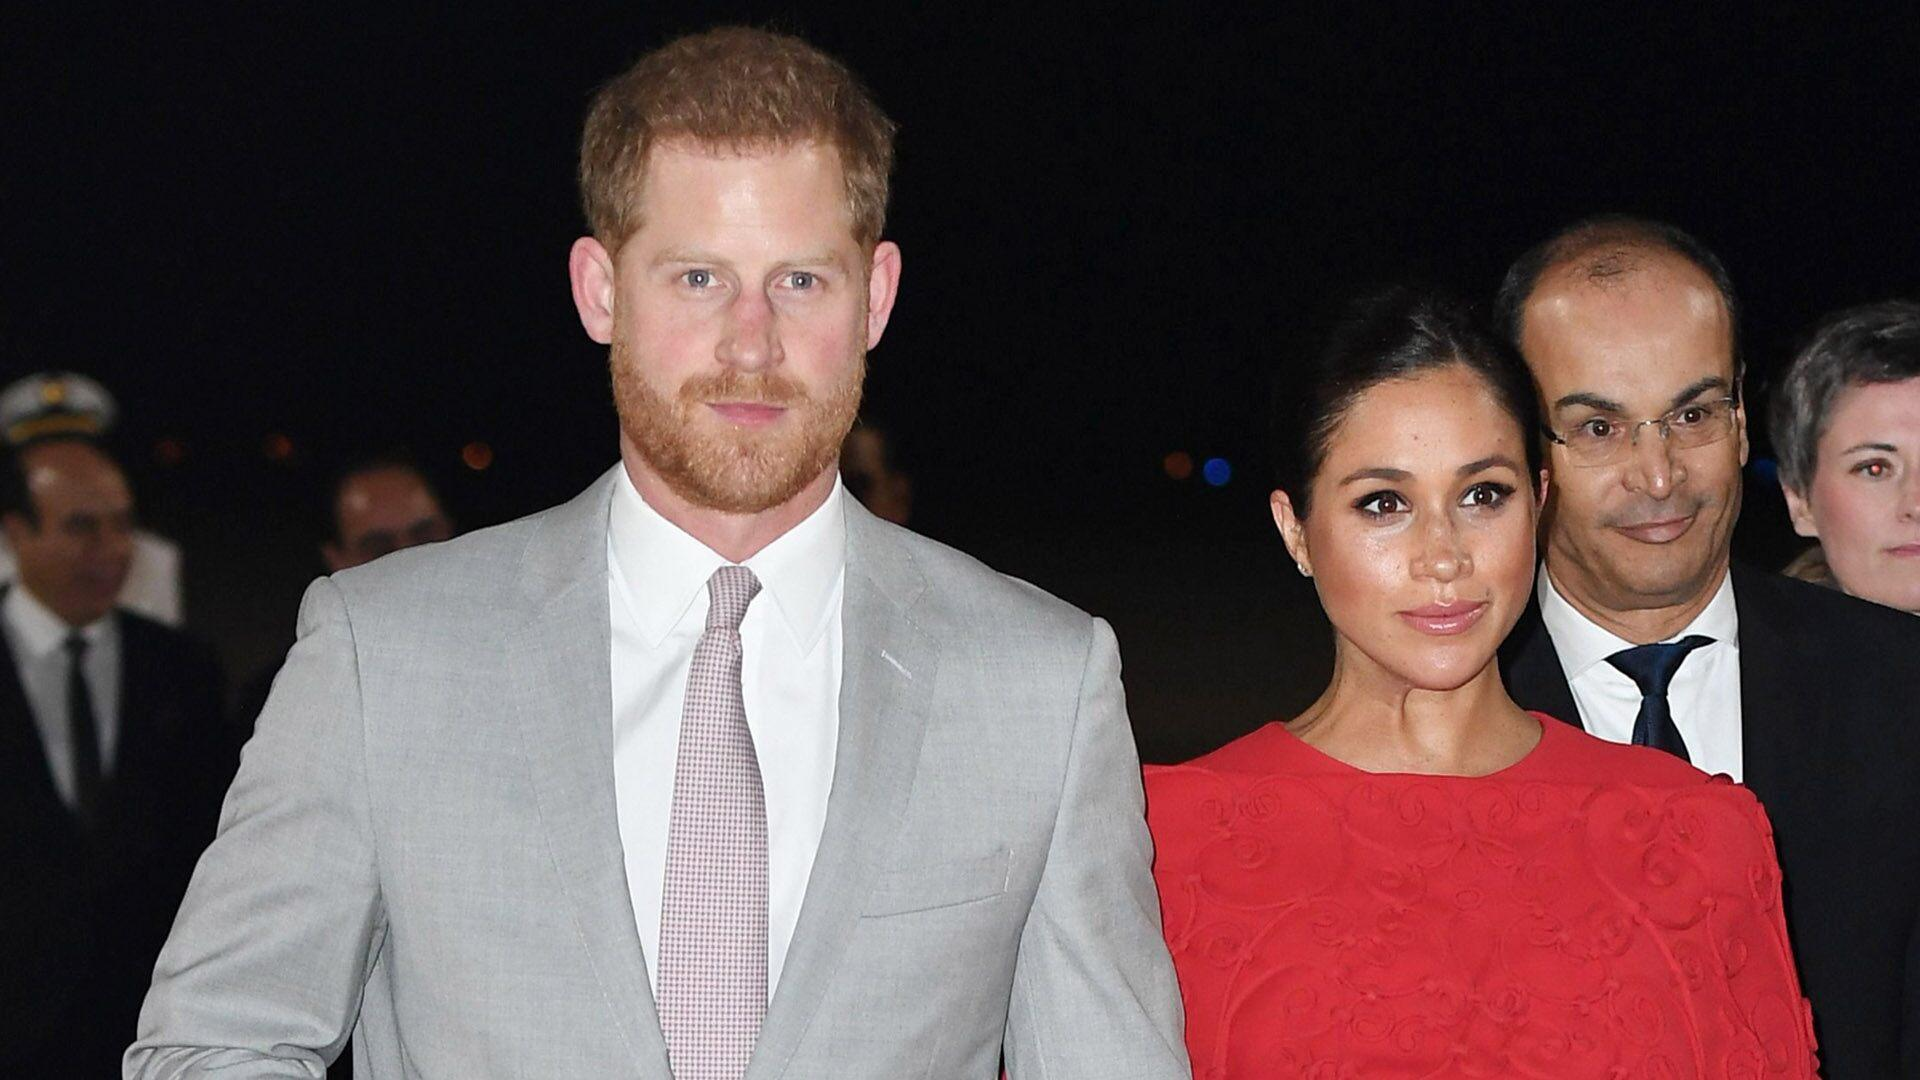 'Meghan and Harry Plus One': Meghan Markle's Friends Say She Will Be a 'Strict' Mother -- But In a Good Way